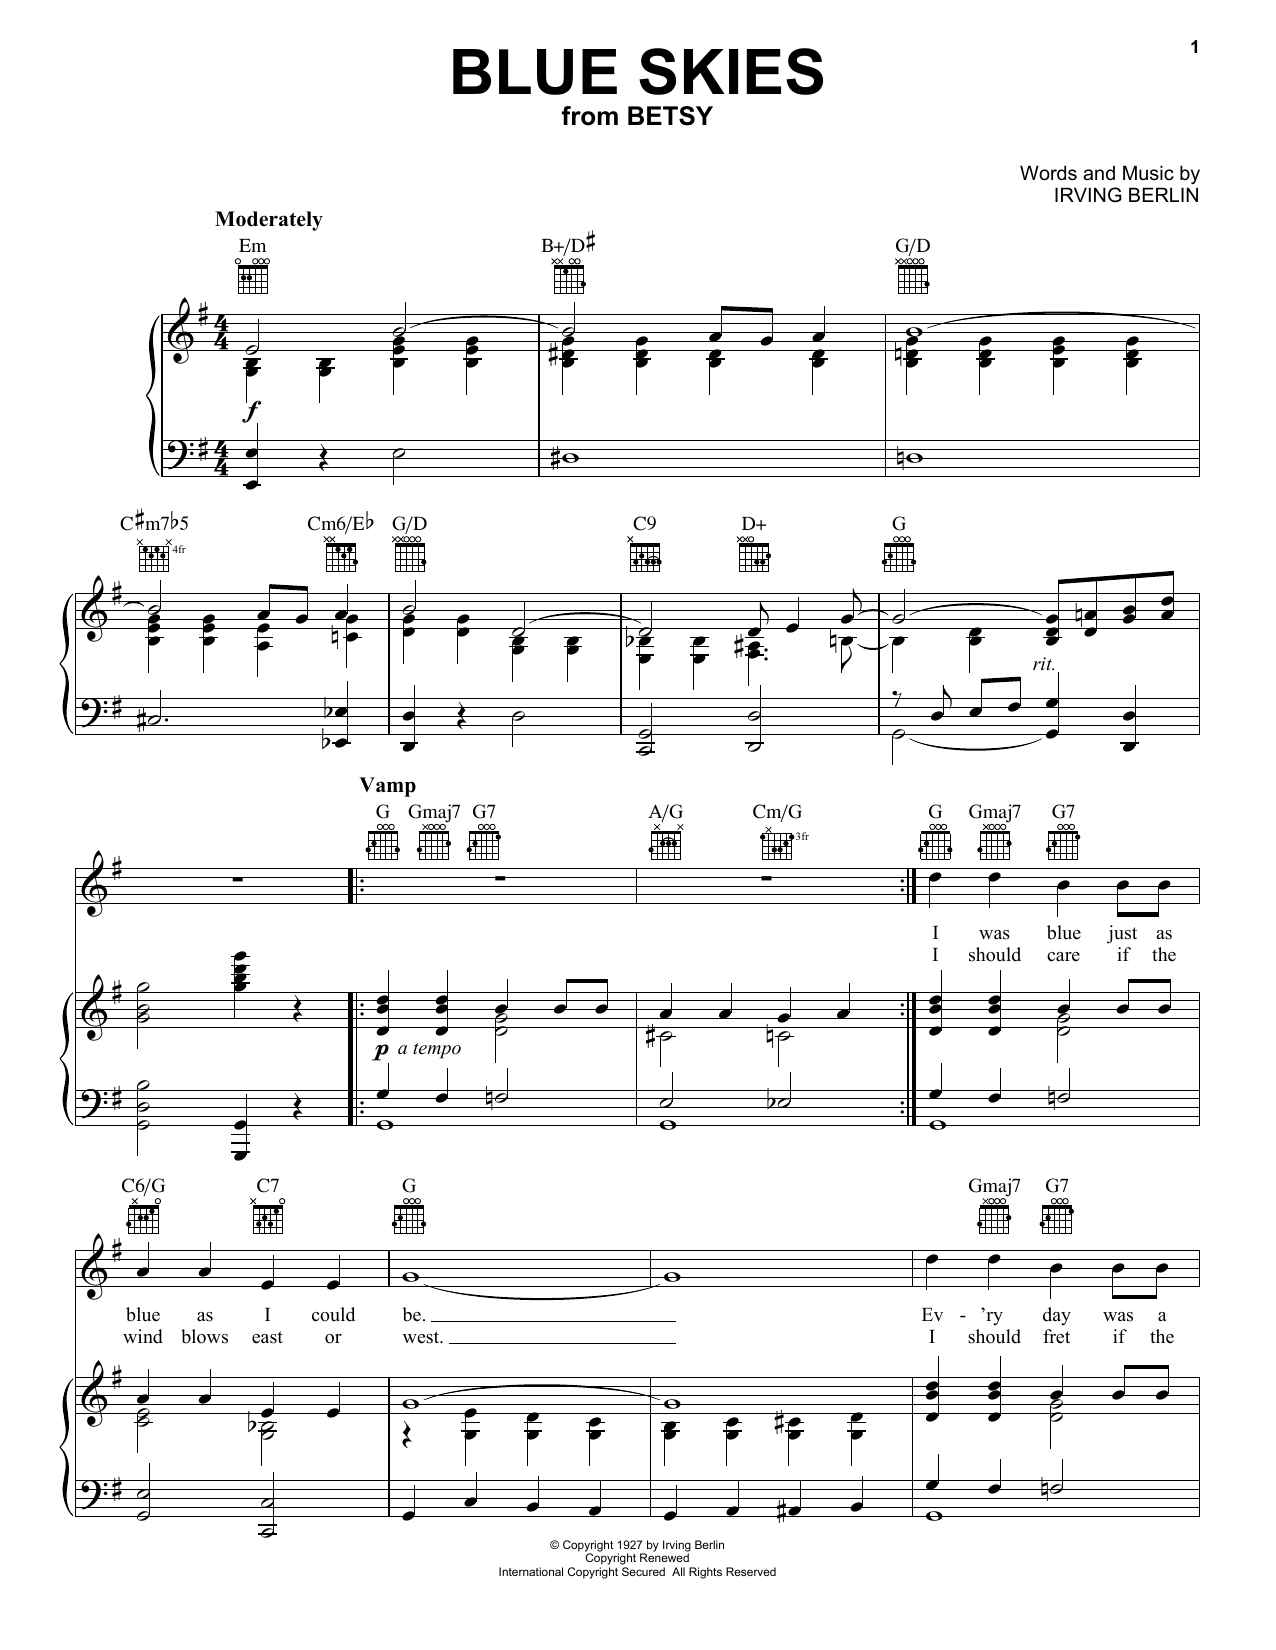 Frank Sinatra Blue Skies sheet music notes and chords. Download Printable PDF.